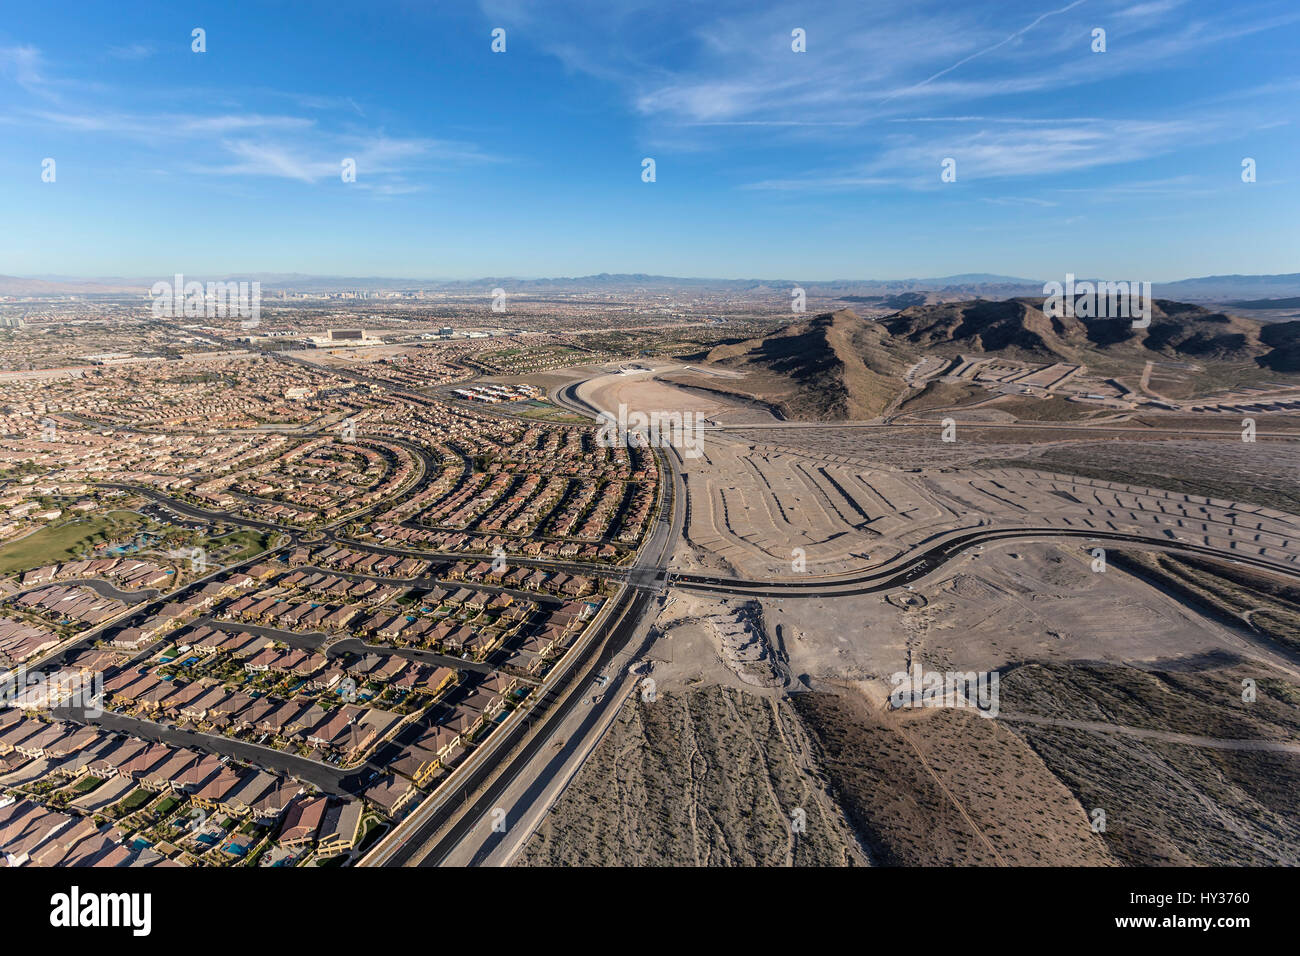 Aerial view of the western edge of Summerlin near Red Rock National Conservation Area in Las Vegas, Nevada. - Stock Image